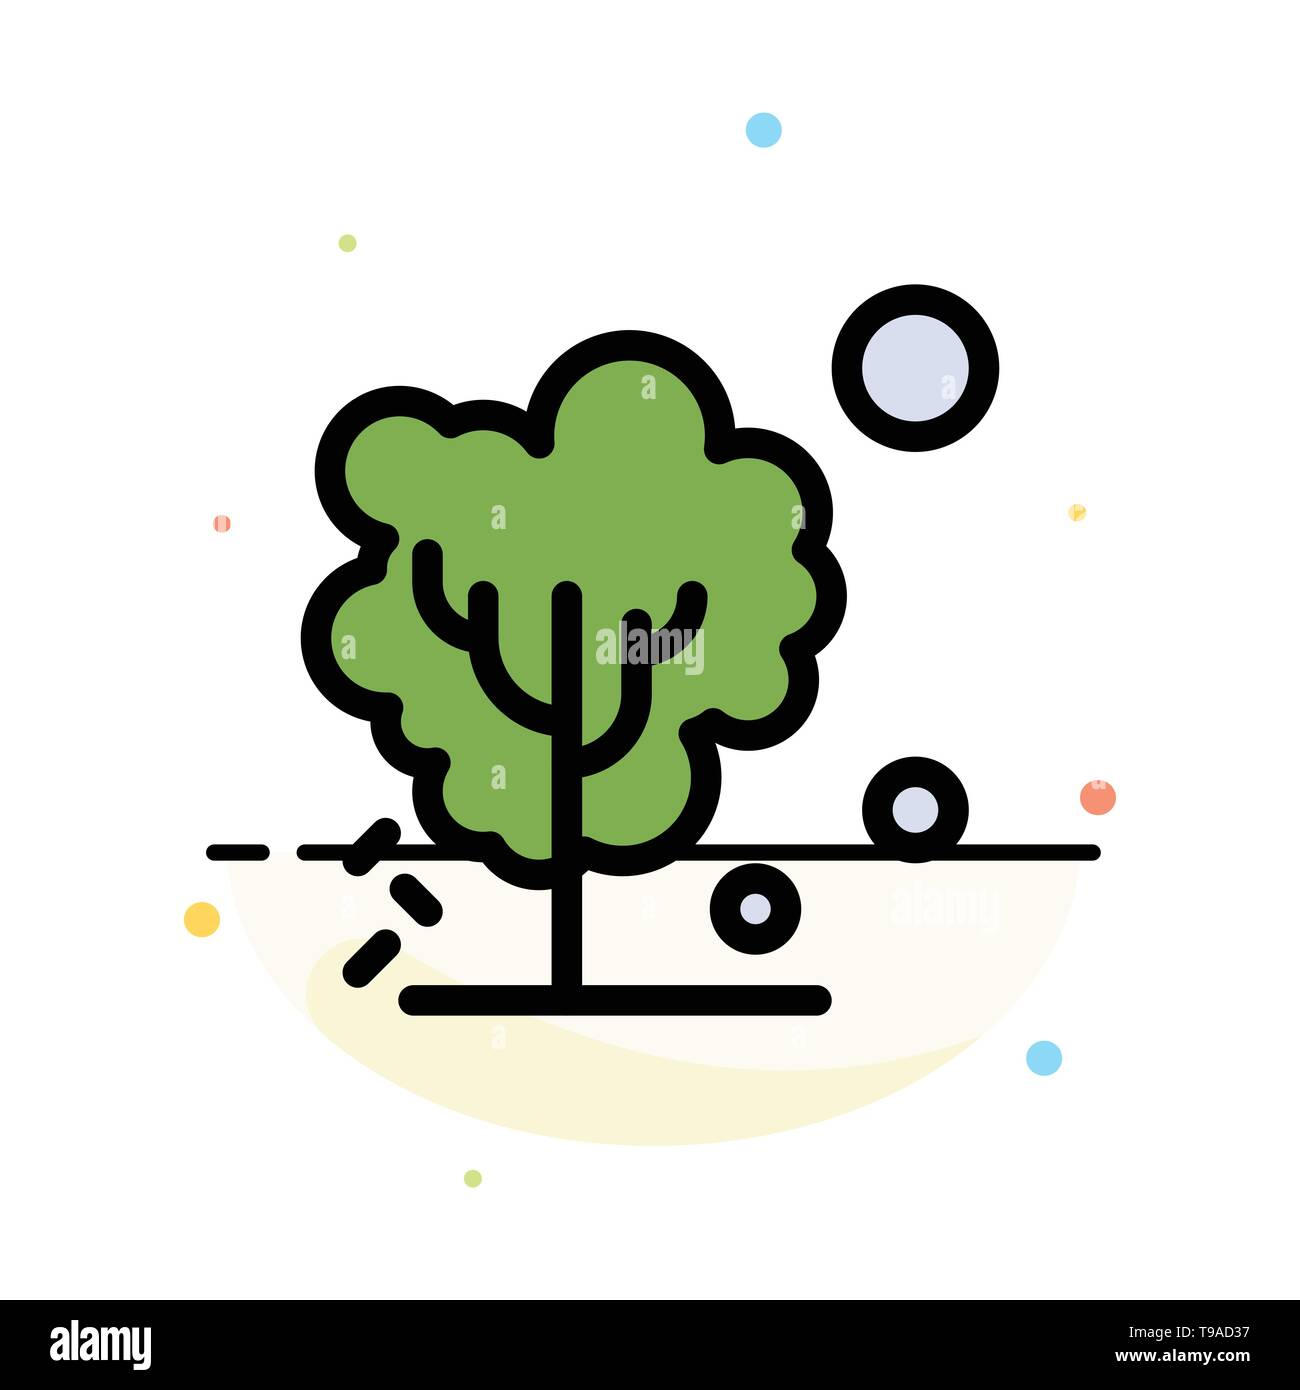 Dry, Global, Soil, Tree, Warming Abstract Flat Color Icon Template - Stock Image